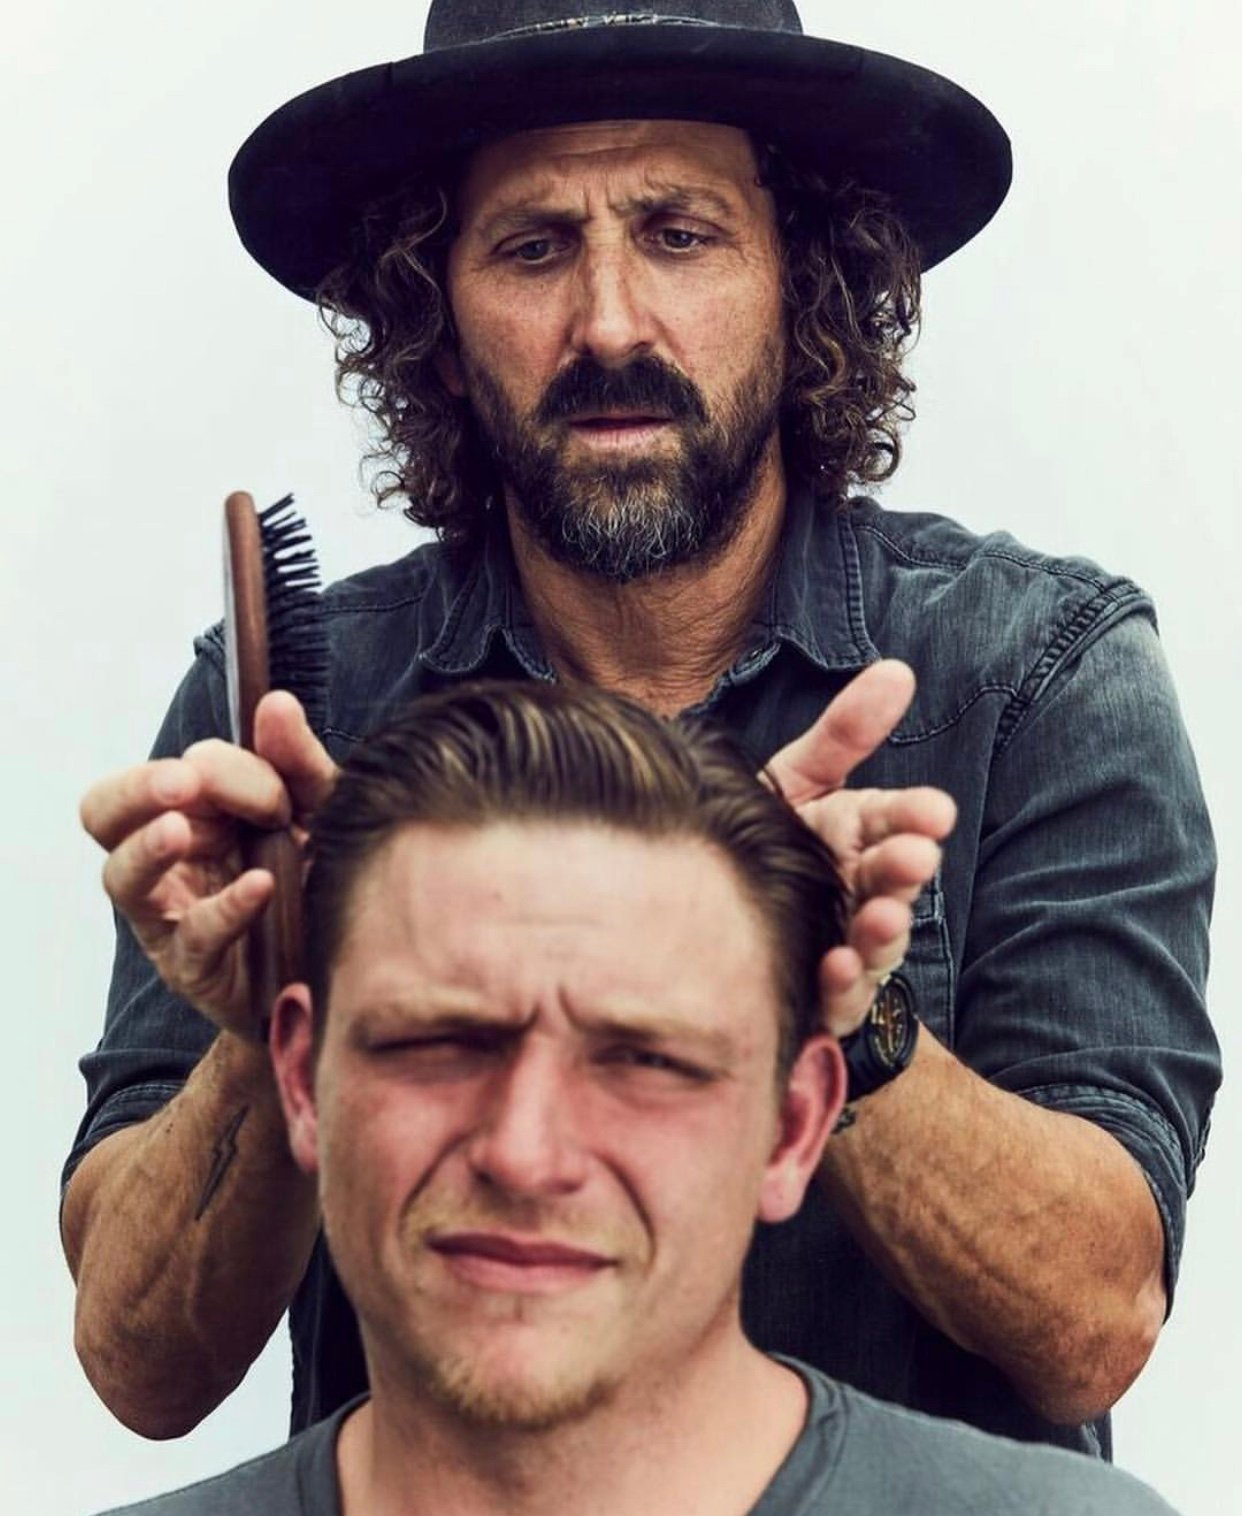 Life-Changing Haircuts: @themensgroomer Takes His Passion for Service and Style to the Streets